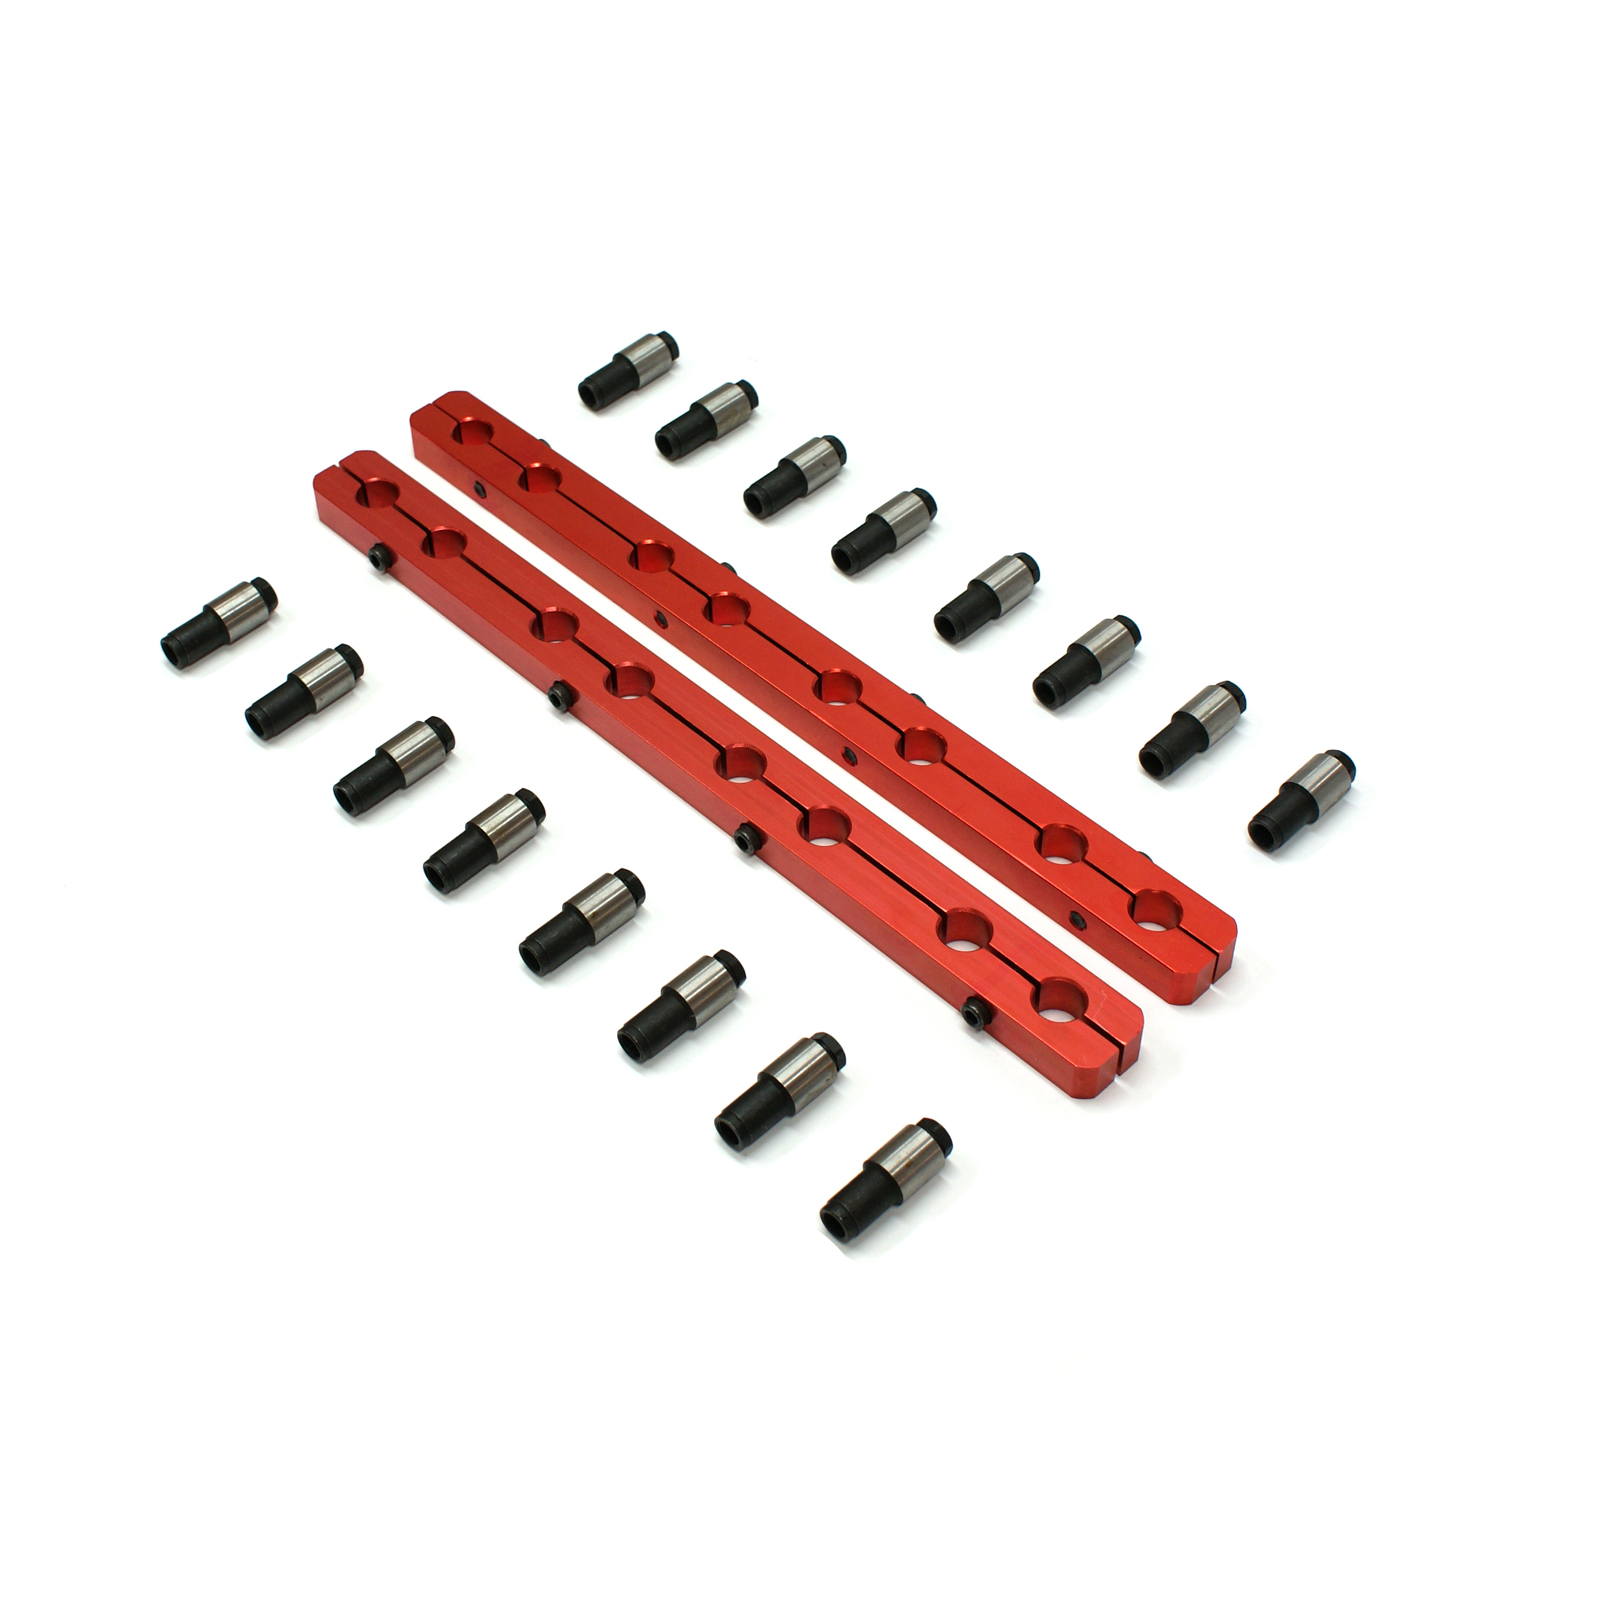 "Chevy SBC 350 Rocker Stud Girdle Kit Red With 3/8"" Posi Locks"